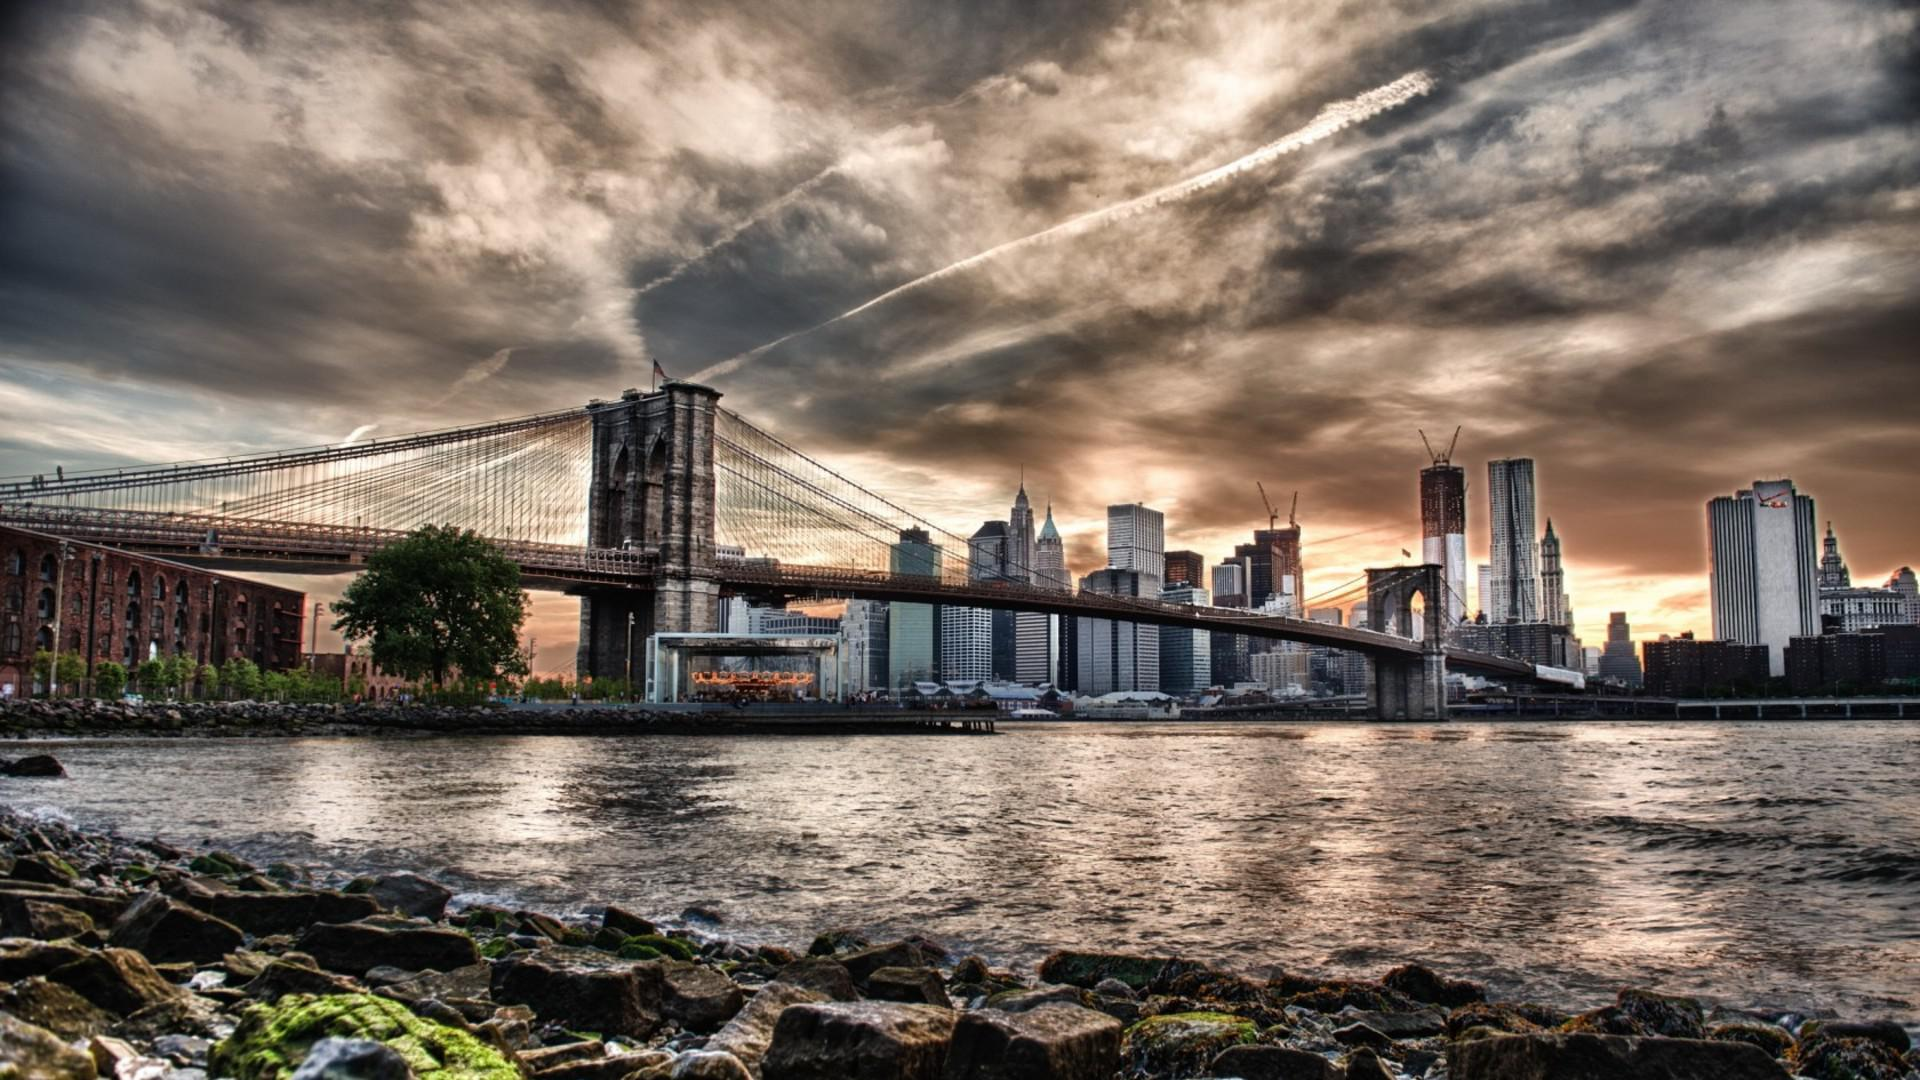 Full Hd 3d Wallpapers 1920x1080 Free Download For Mobile Brooklyn Bridge Background Free Download Pixelstalk Net